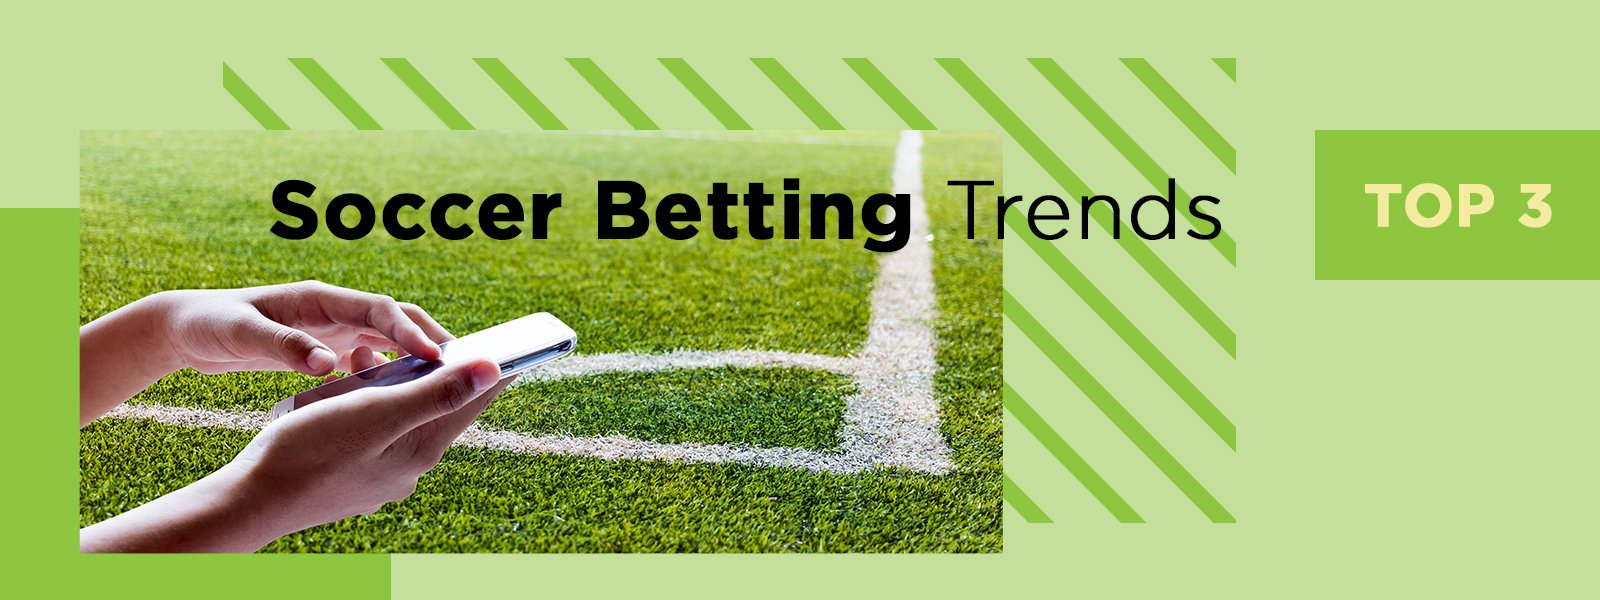 Top Three Soccer Betting Trends